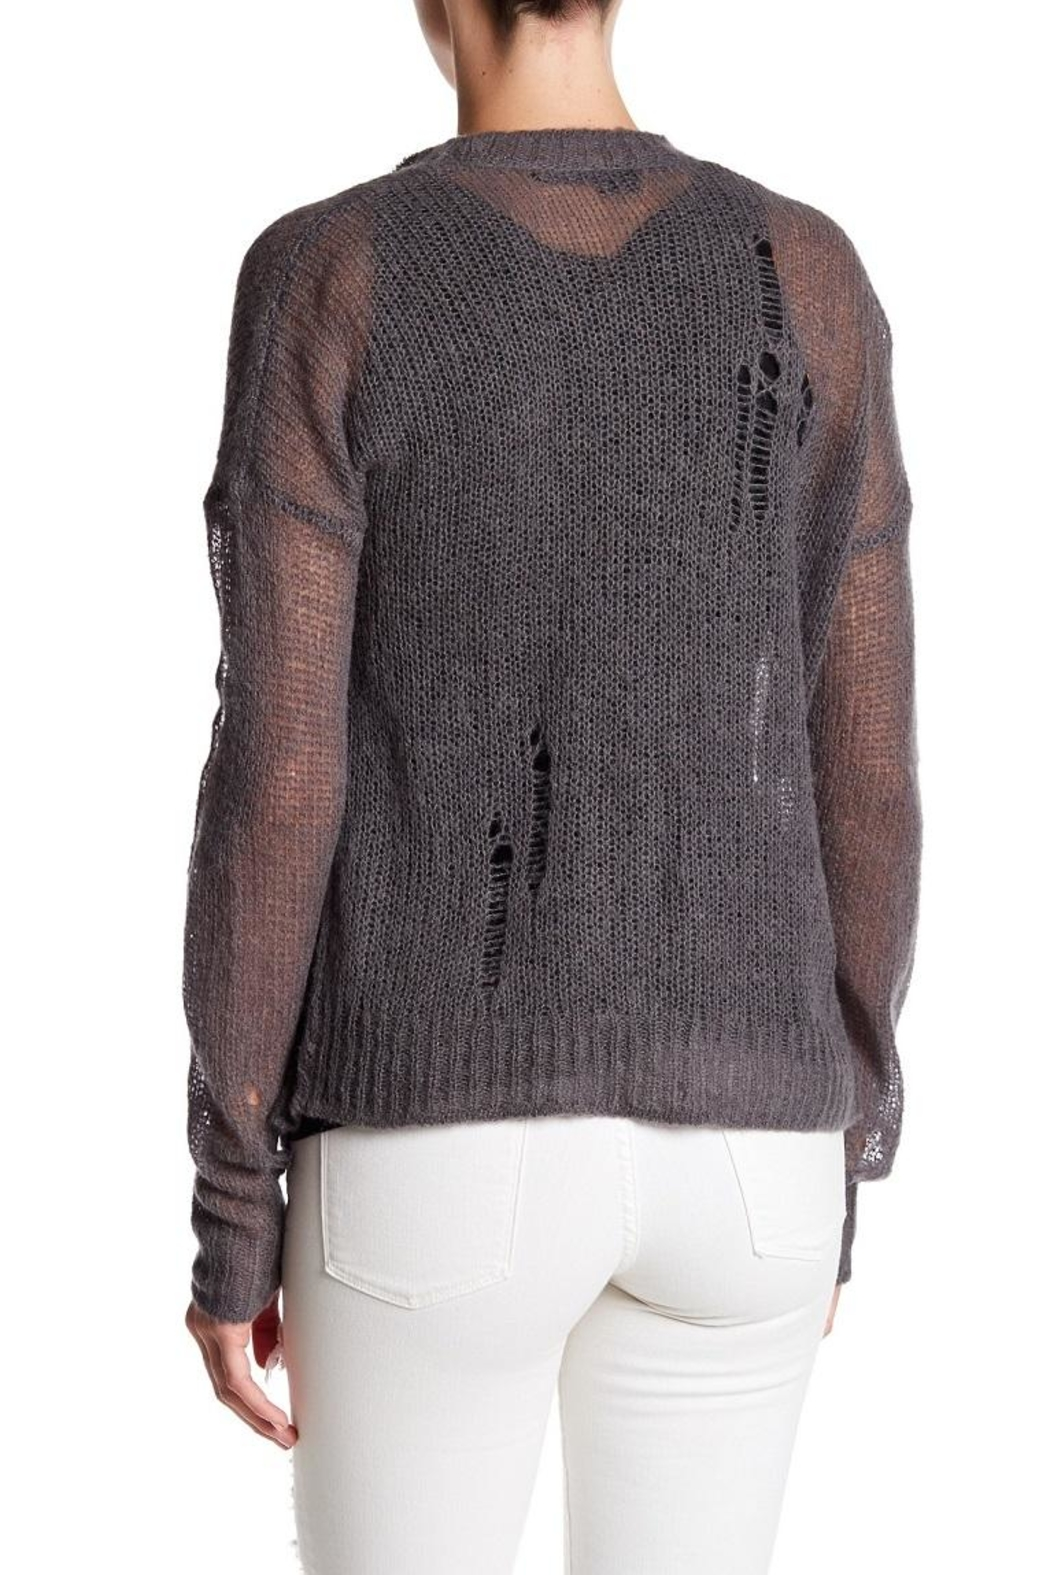 360Sweater Kimi Distressed Sweater - Front Full Image